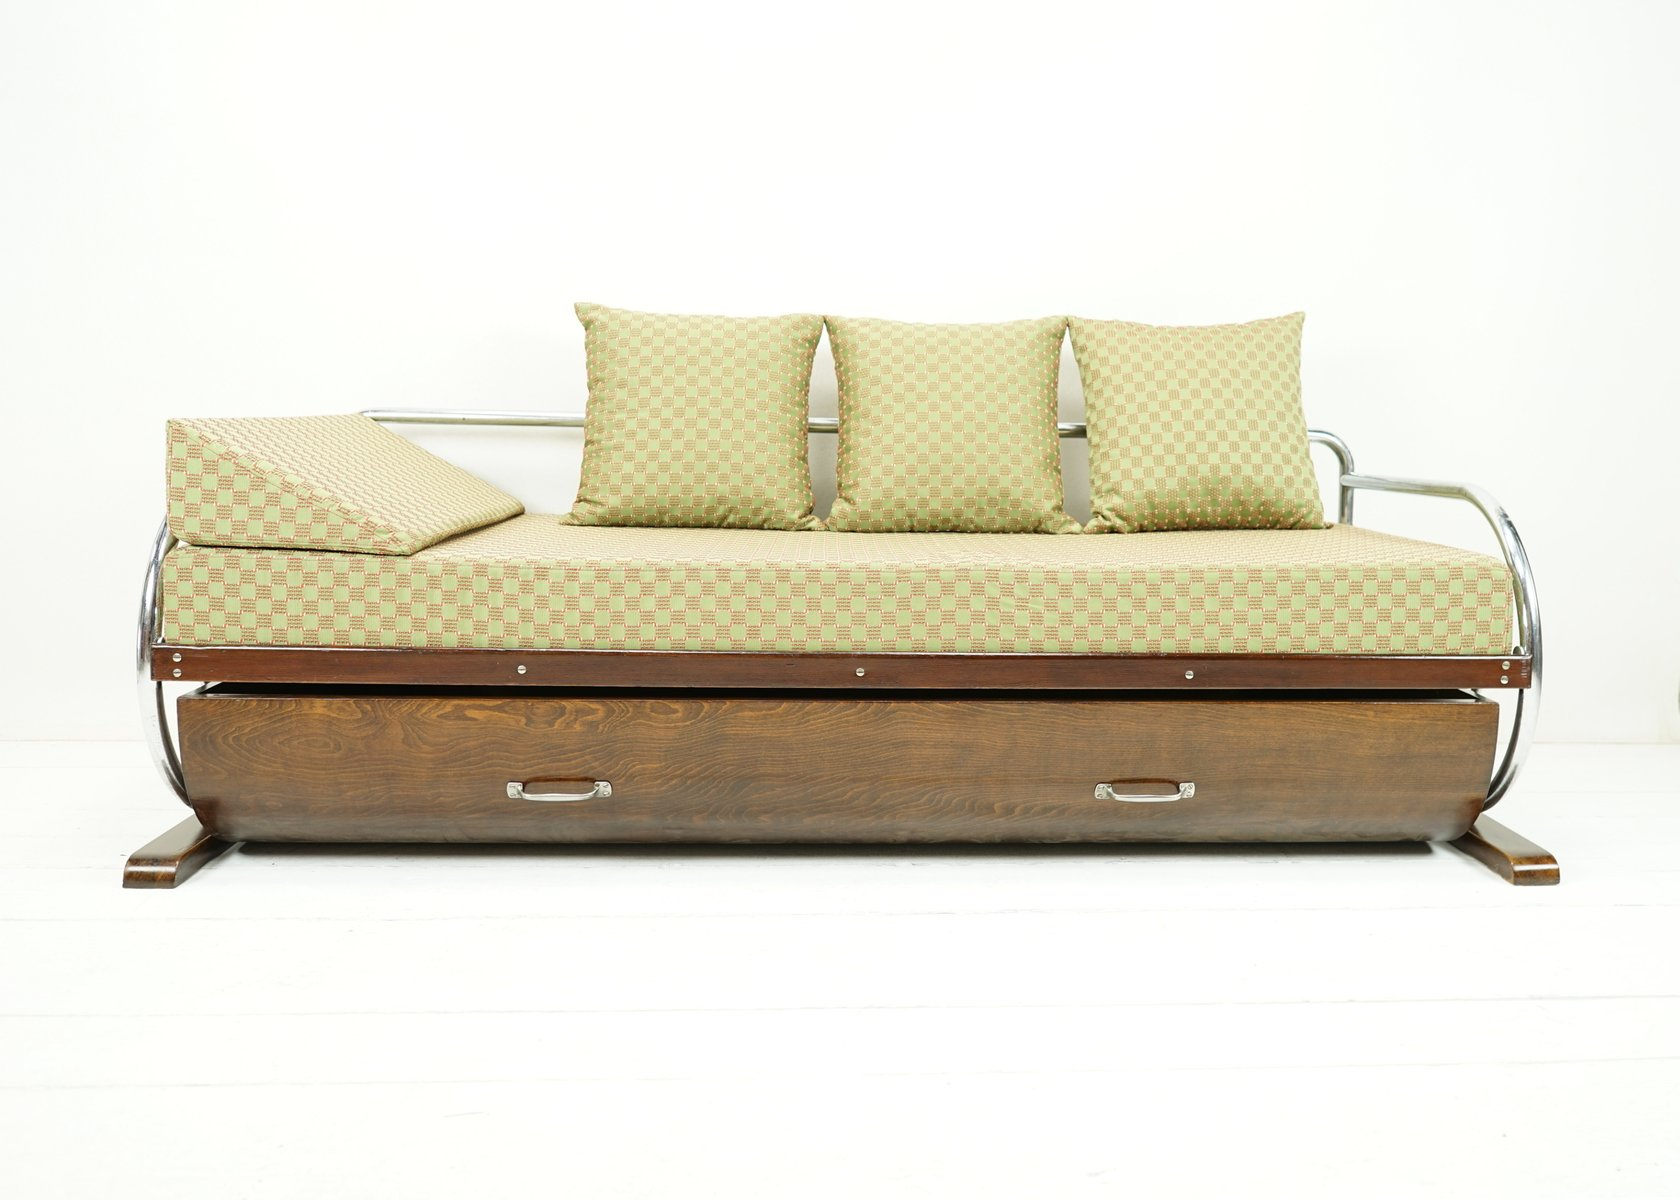 Bauhaus daybed sofa with bed drawer from gottwald for sale for Bauhaus sofa bed